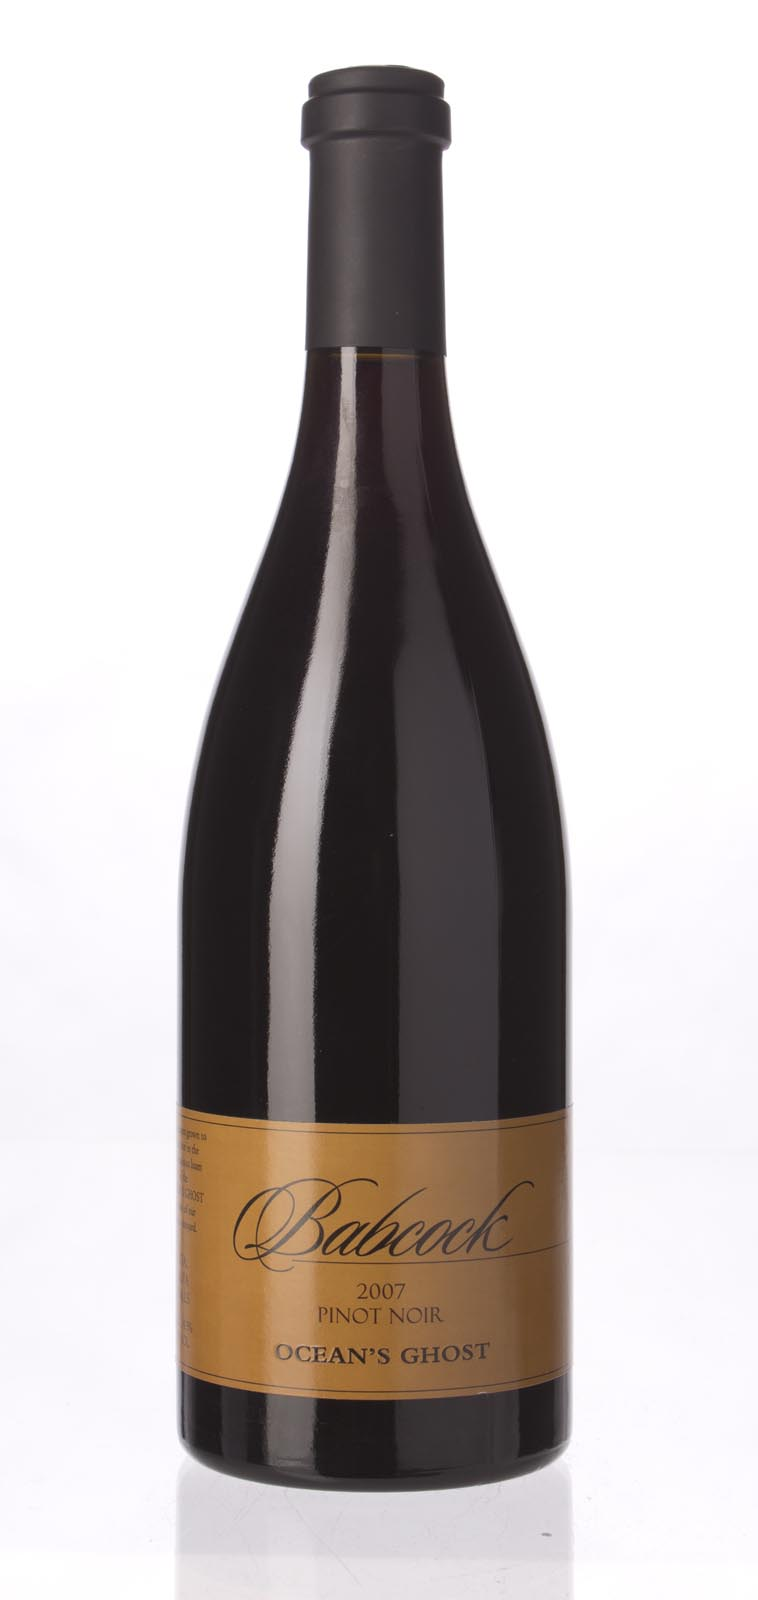 Babcock Pinot Noir Mount Ocean`s Ghost 2007, 750mL () from The BPW - Merchants of rare and fine wines.